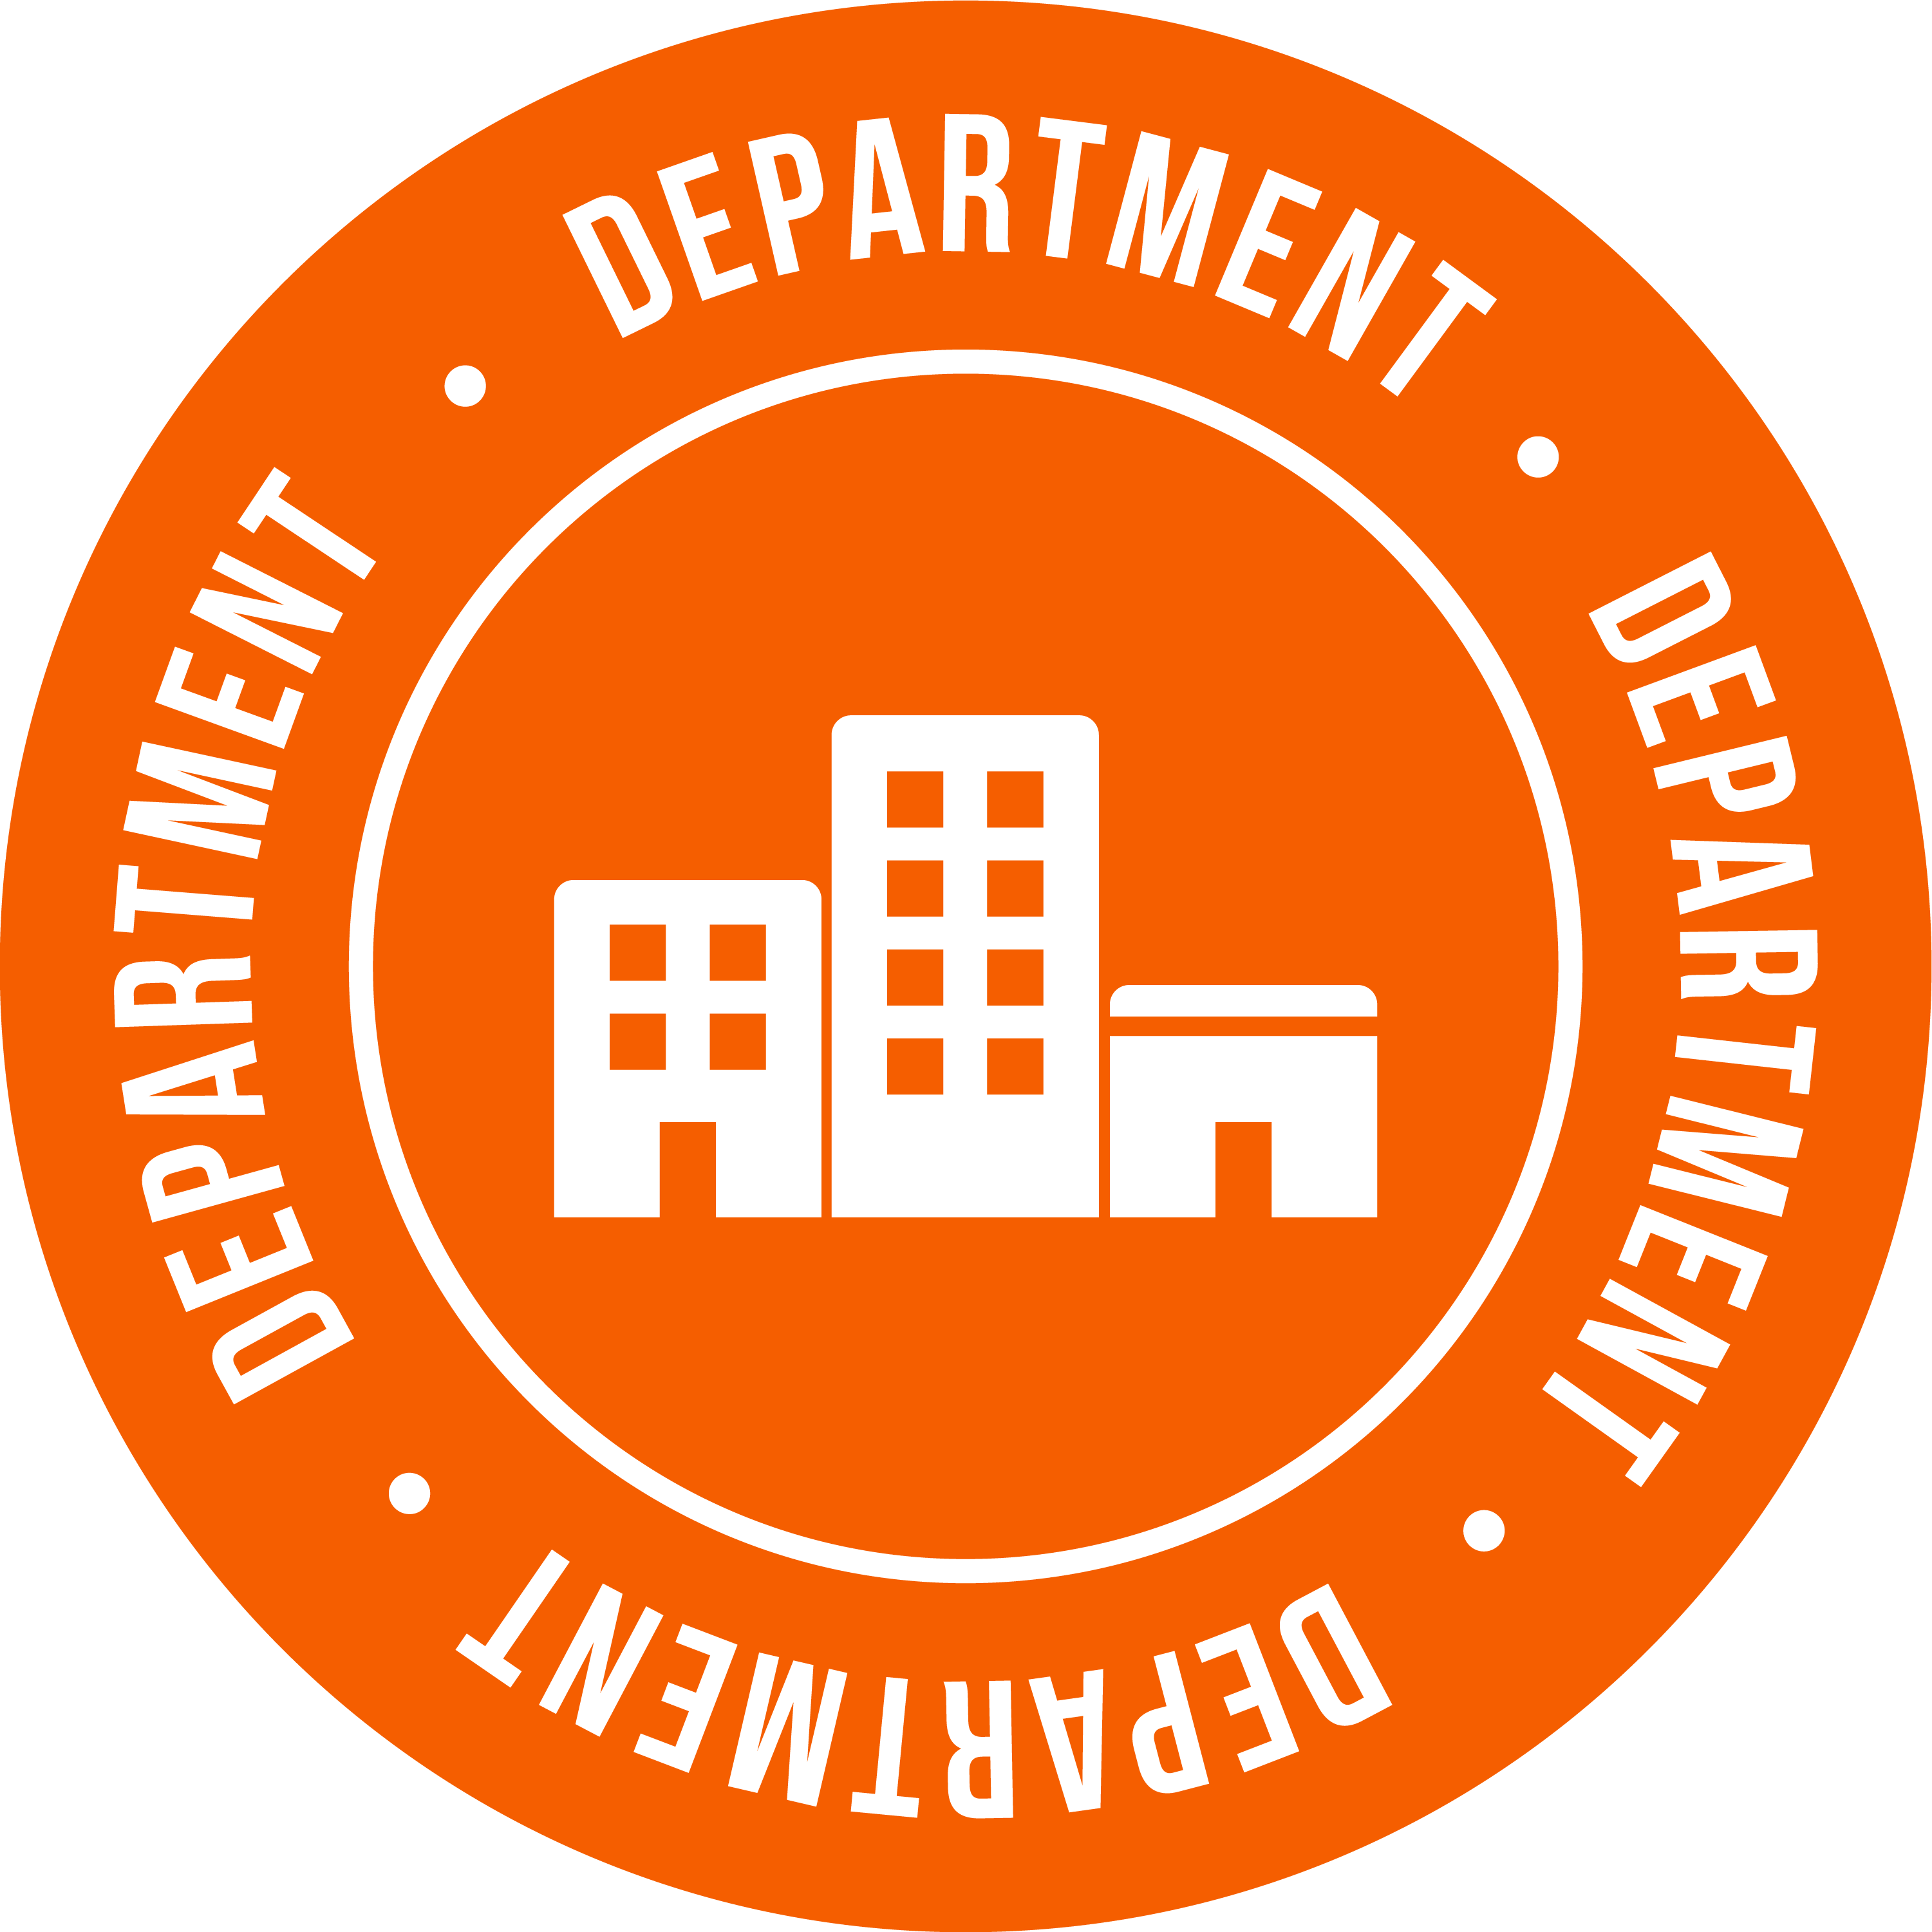 Department Directory Icon